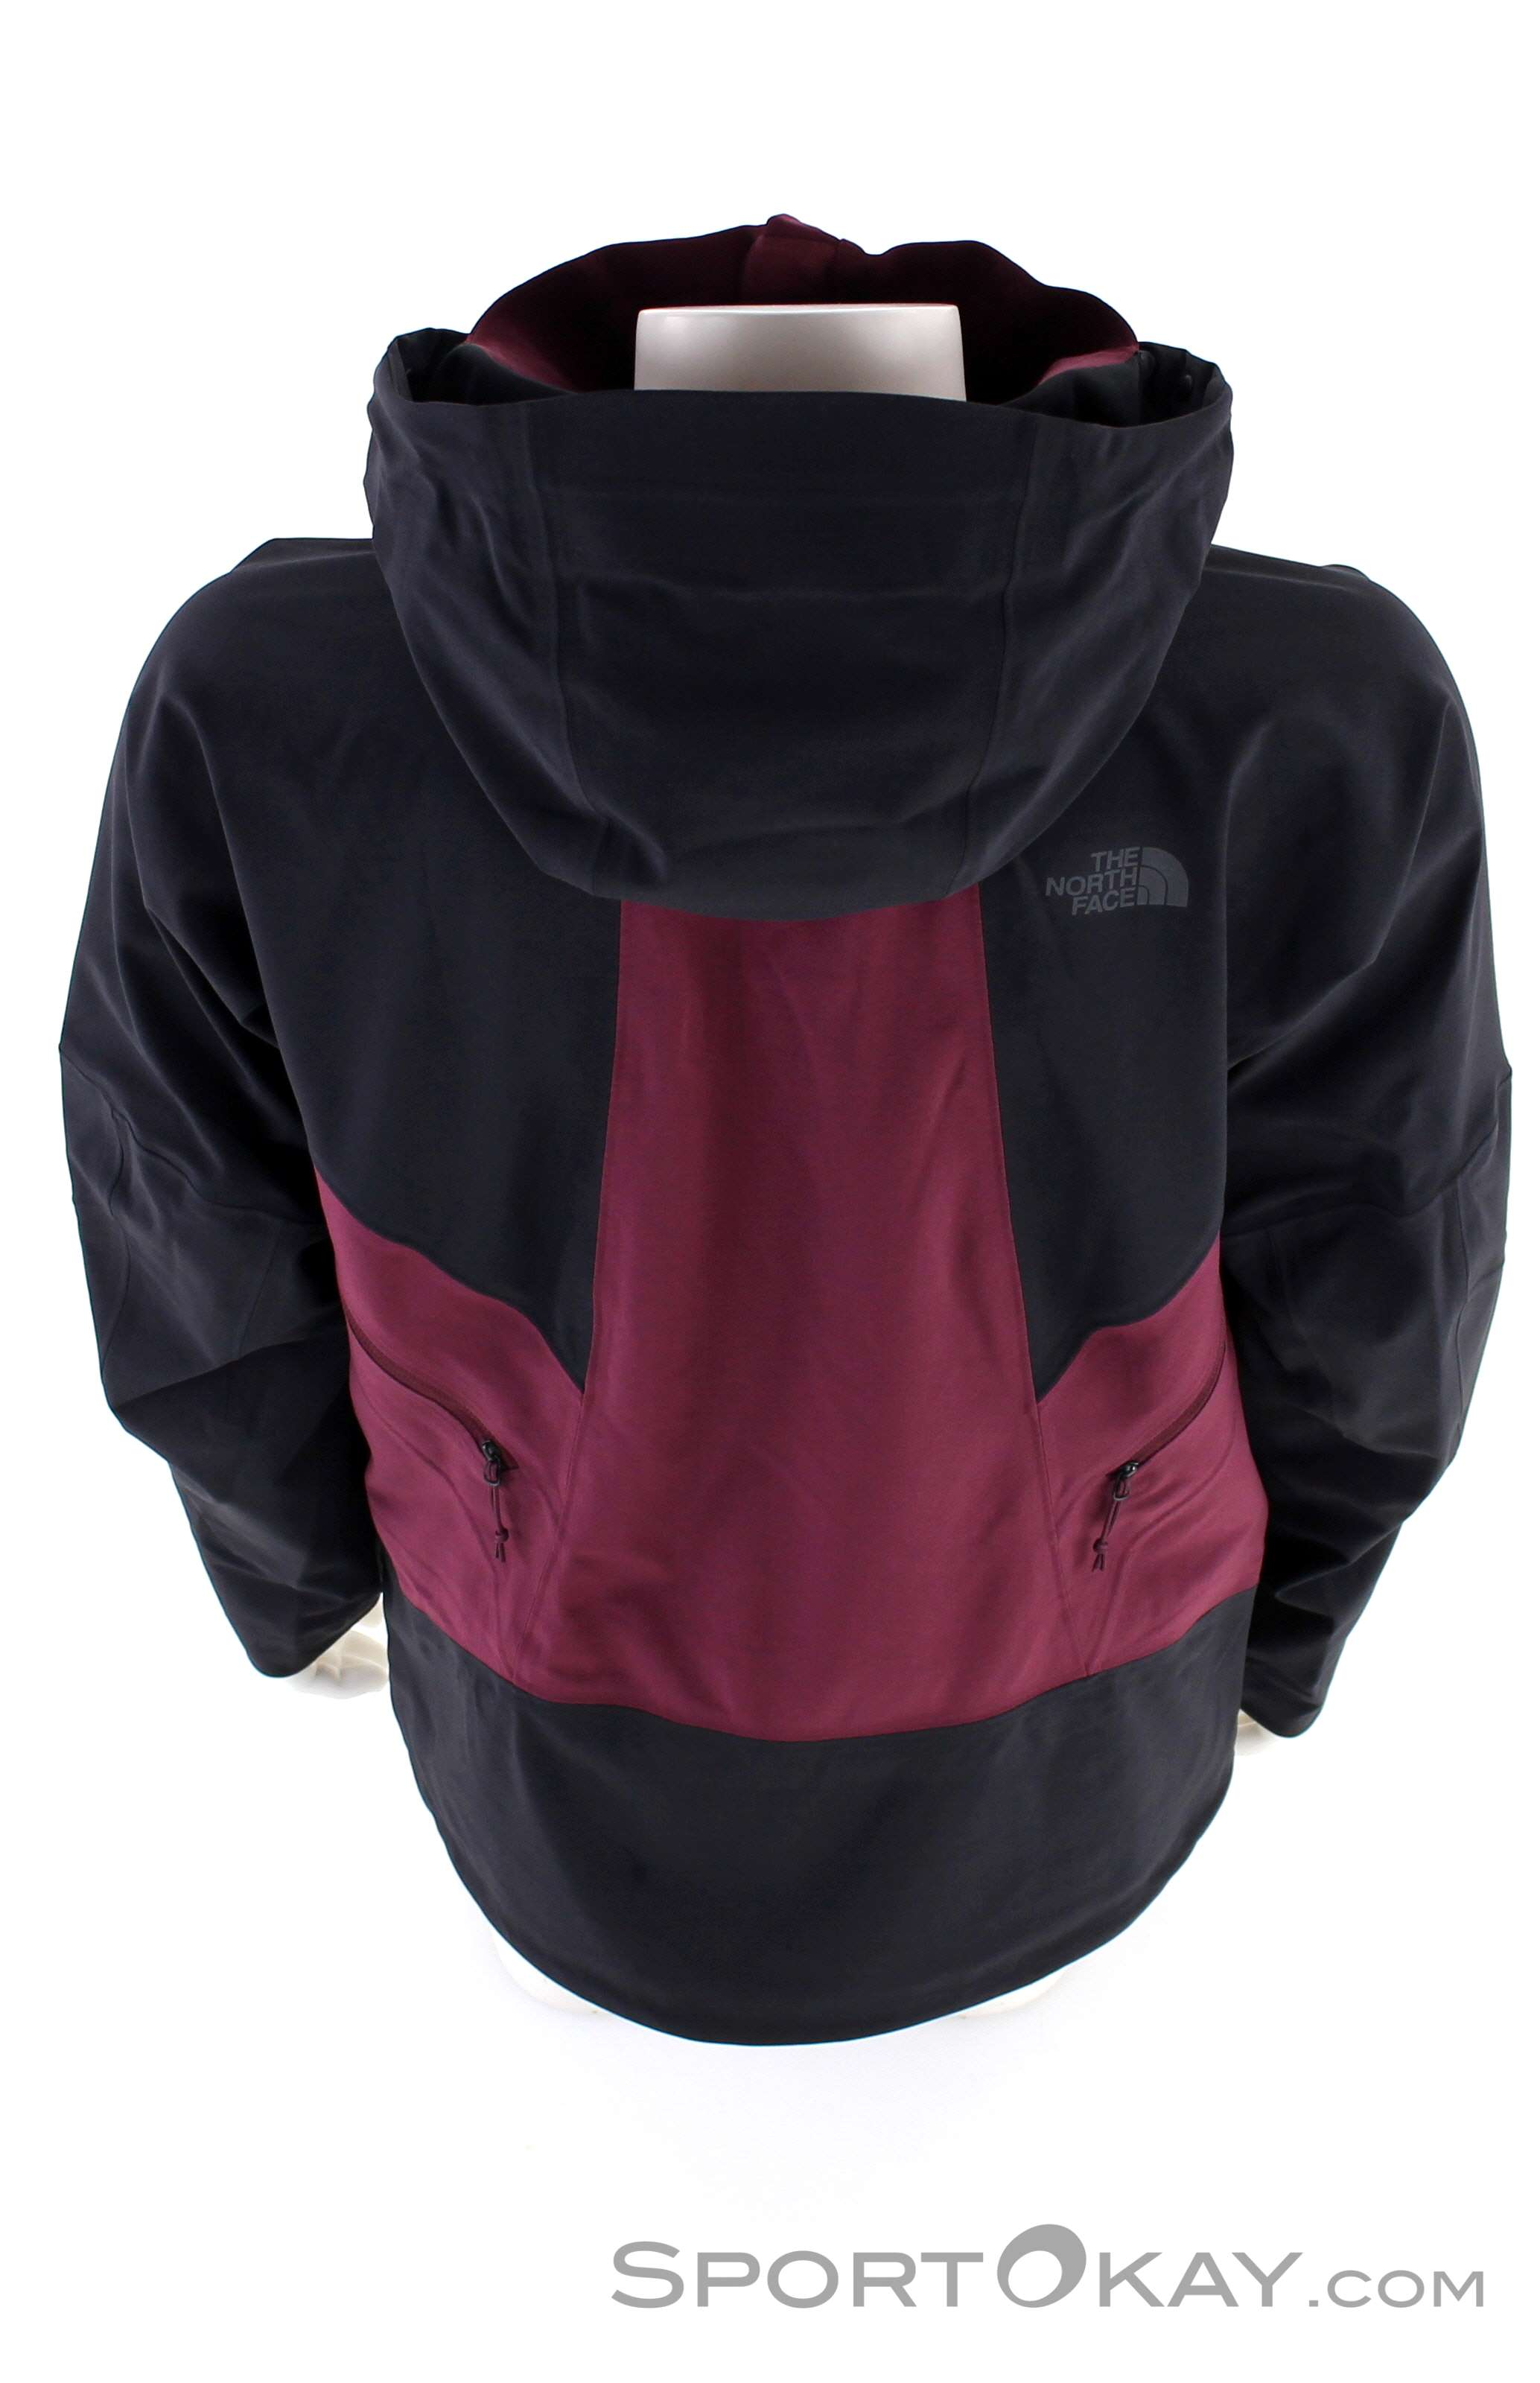 8df6e1da7e6bc8 The North Face Spectre Hybrid Herren Skijacke - Jacken ...